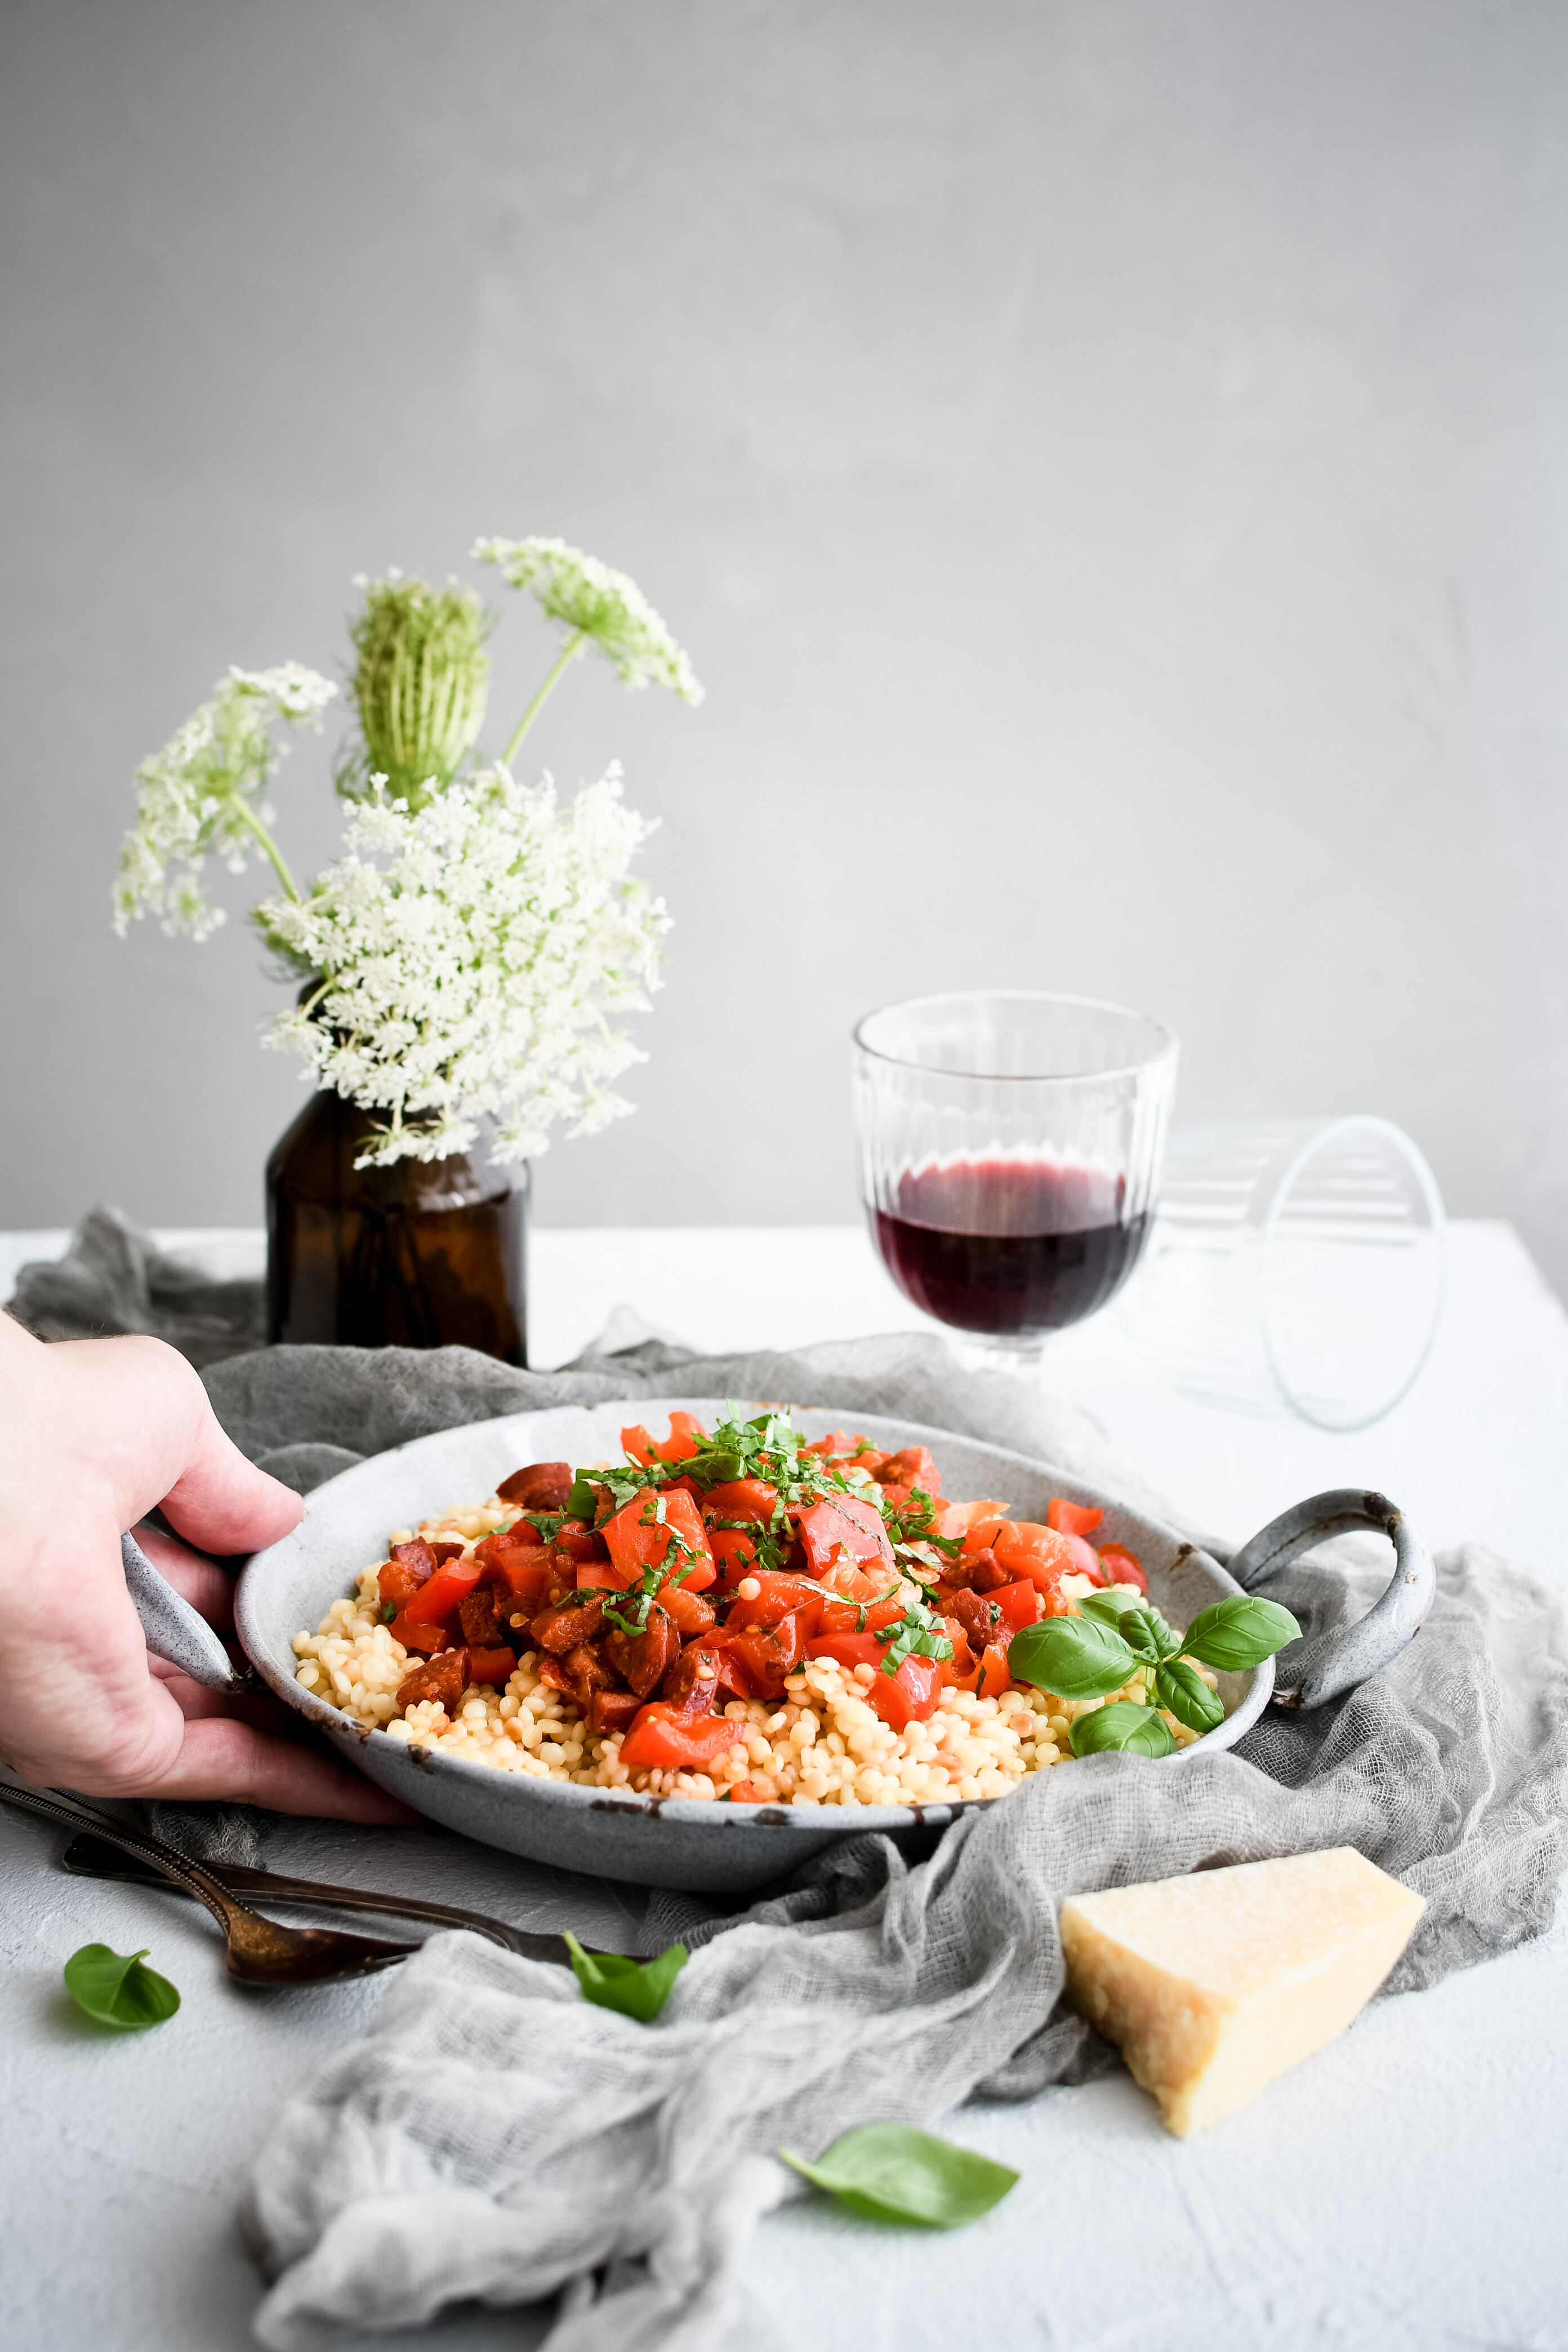 tarhona s omackou / pasta with tomato sauce photography